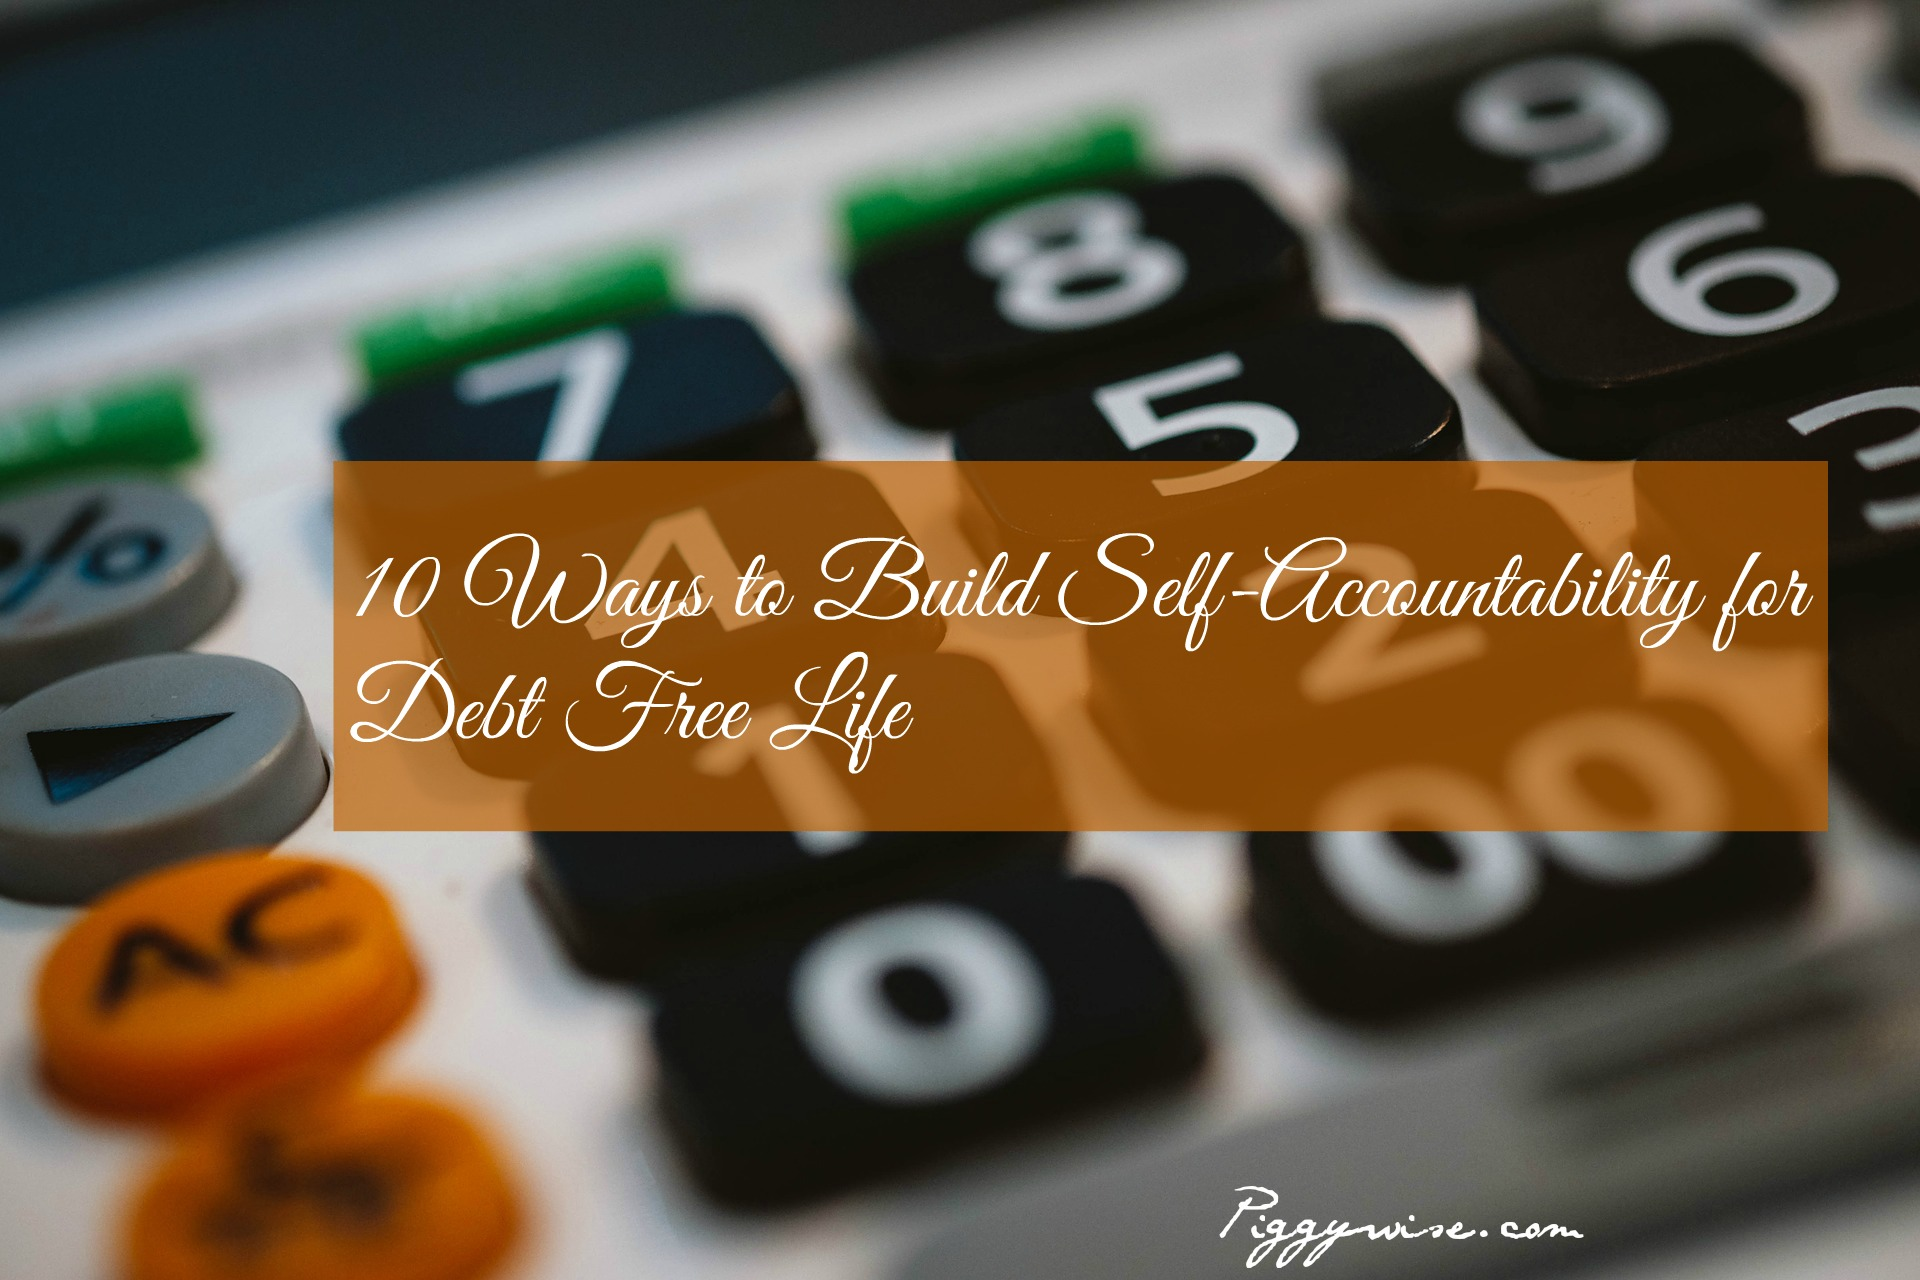 [Infographic] 10 Ways to Build Self-Accountability for Debt Free Life